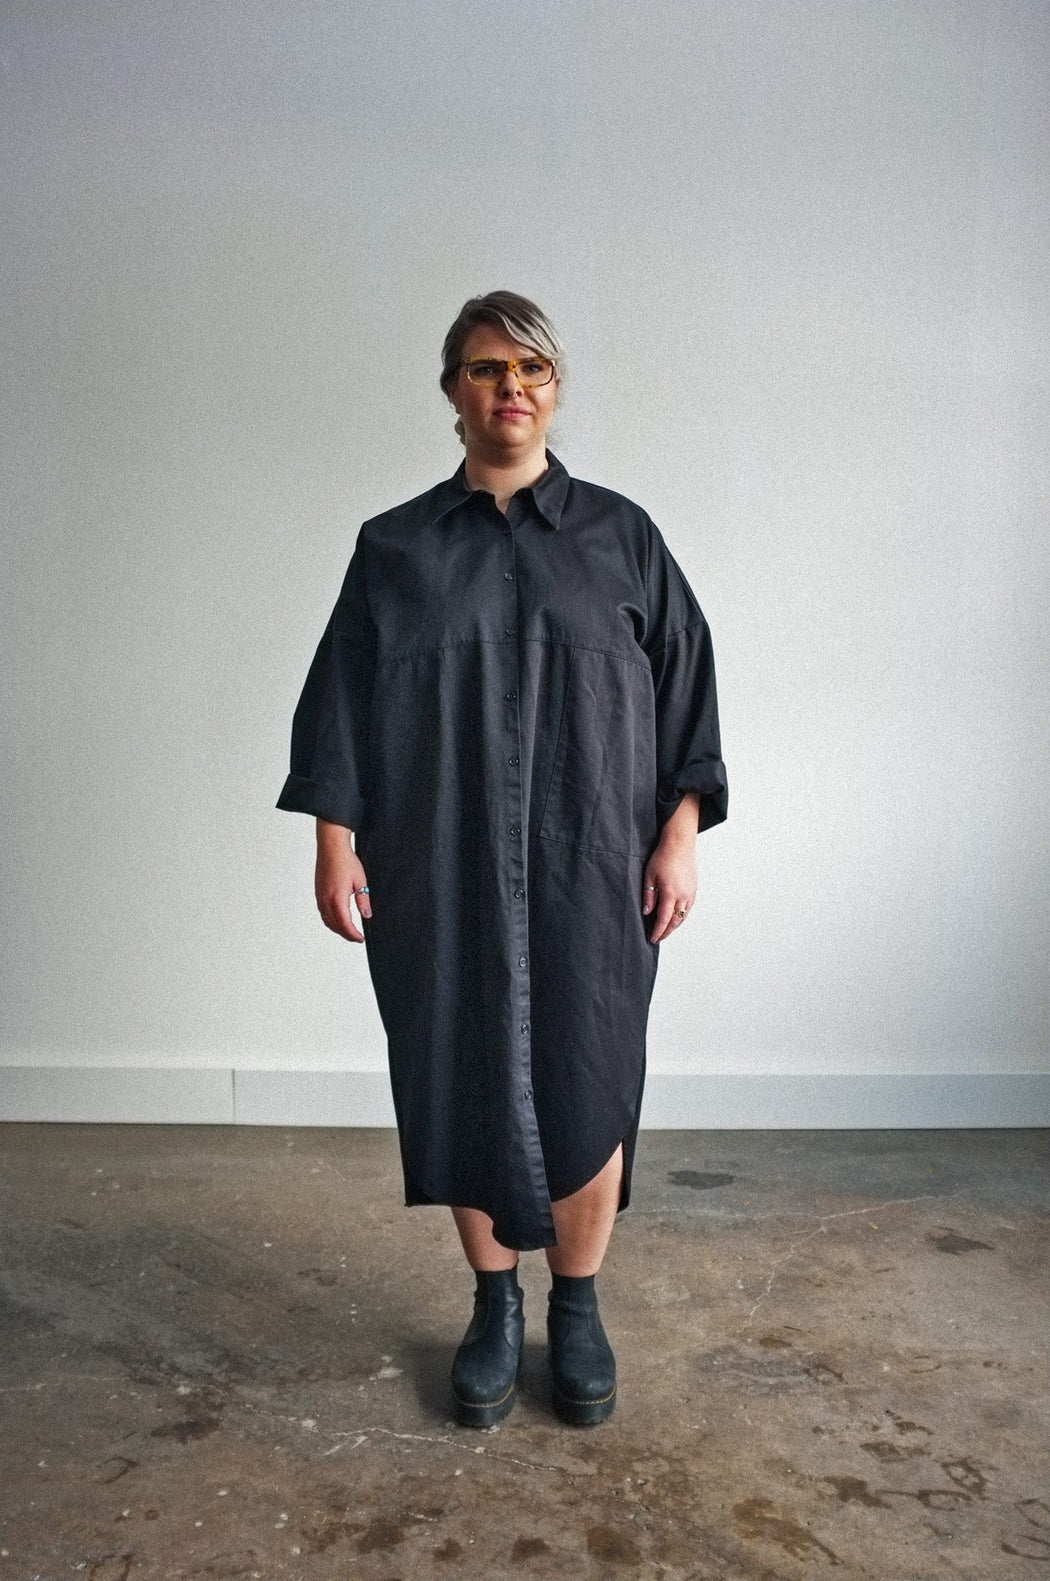 Ines Duster/Dress | Black Cotton